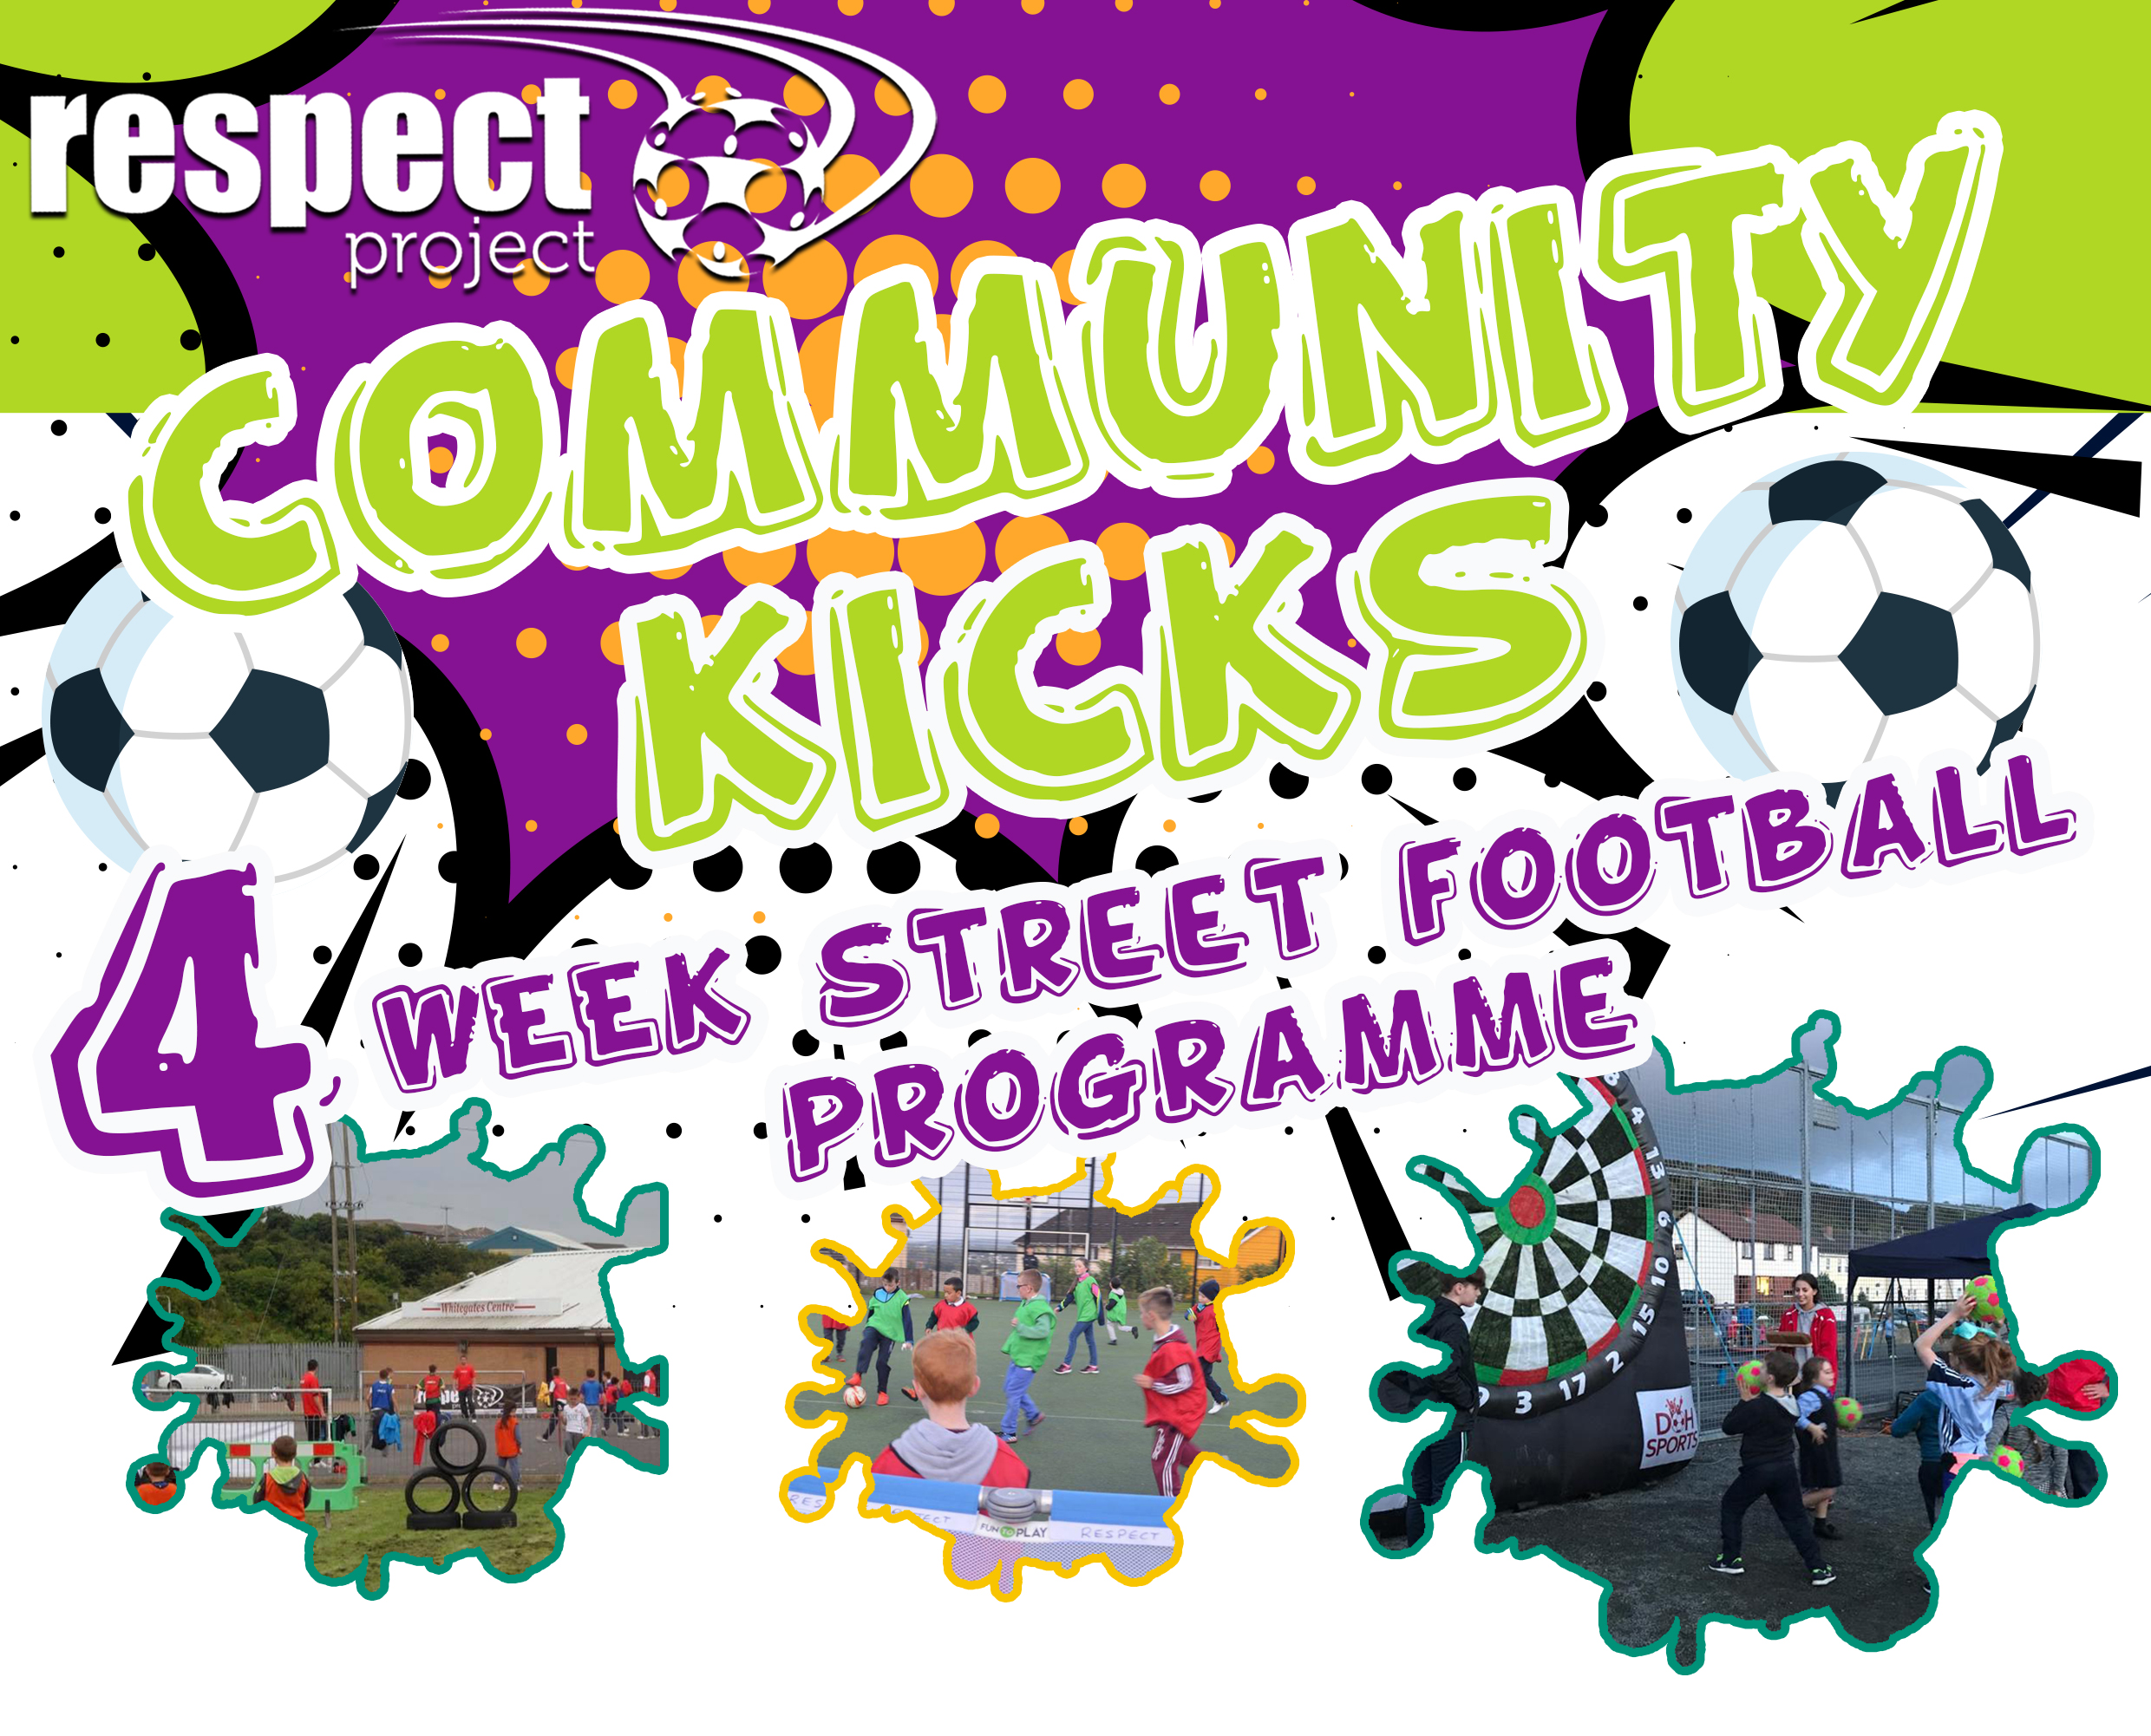 Community Kicks 4 Week Programme